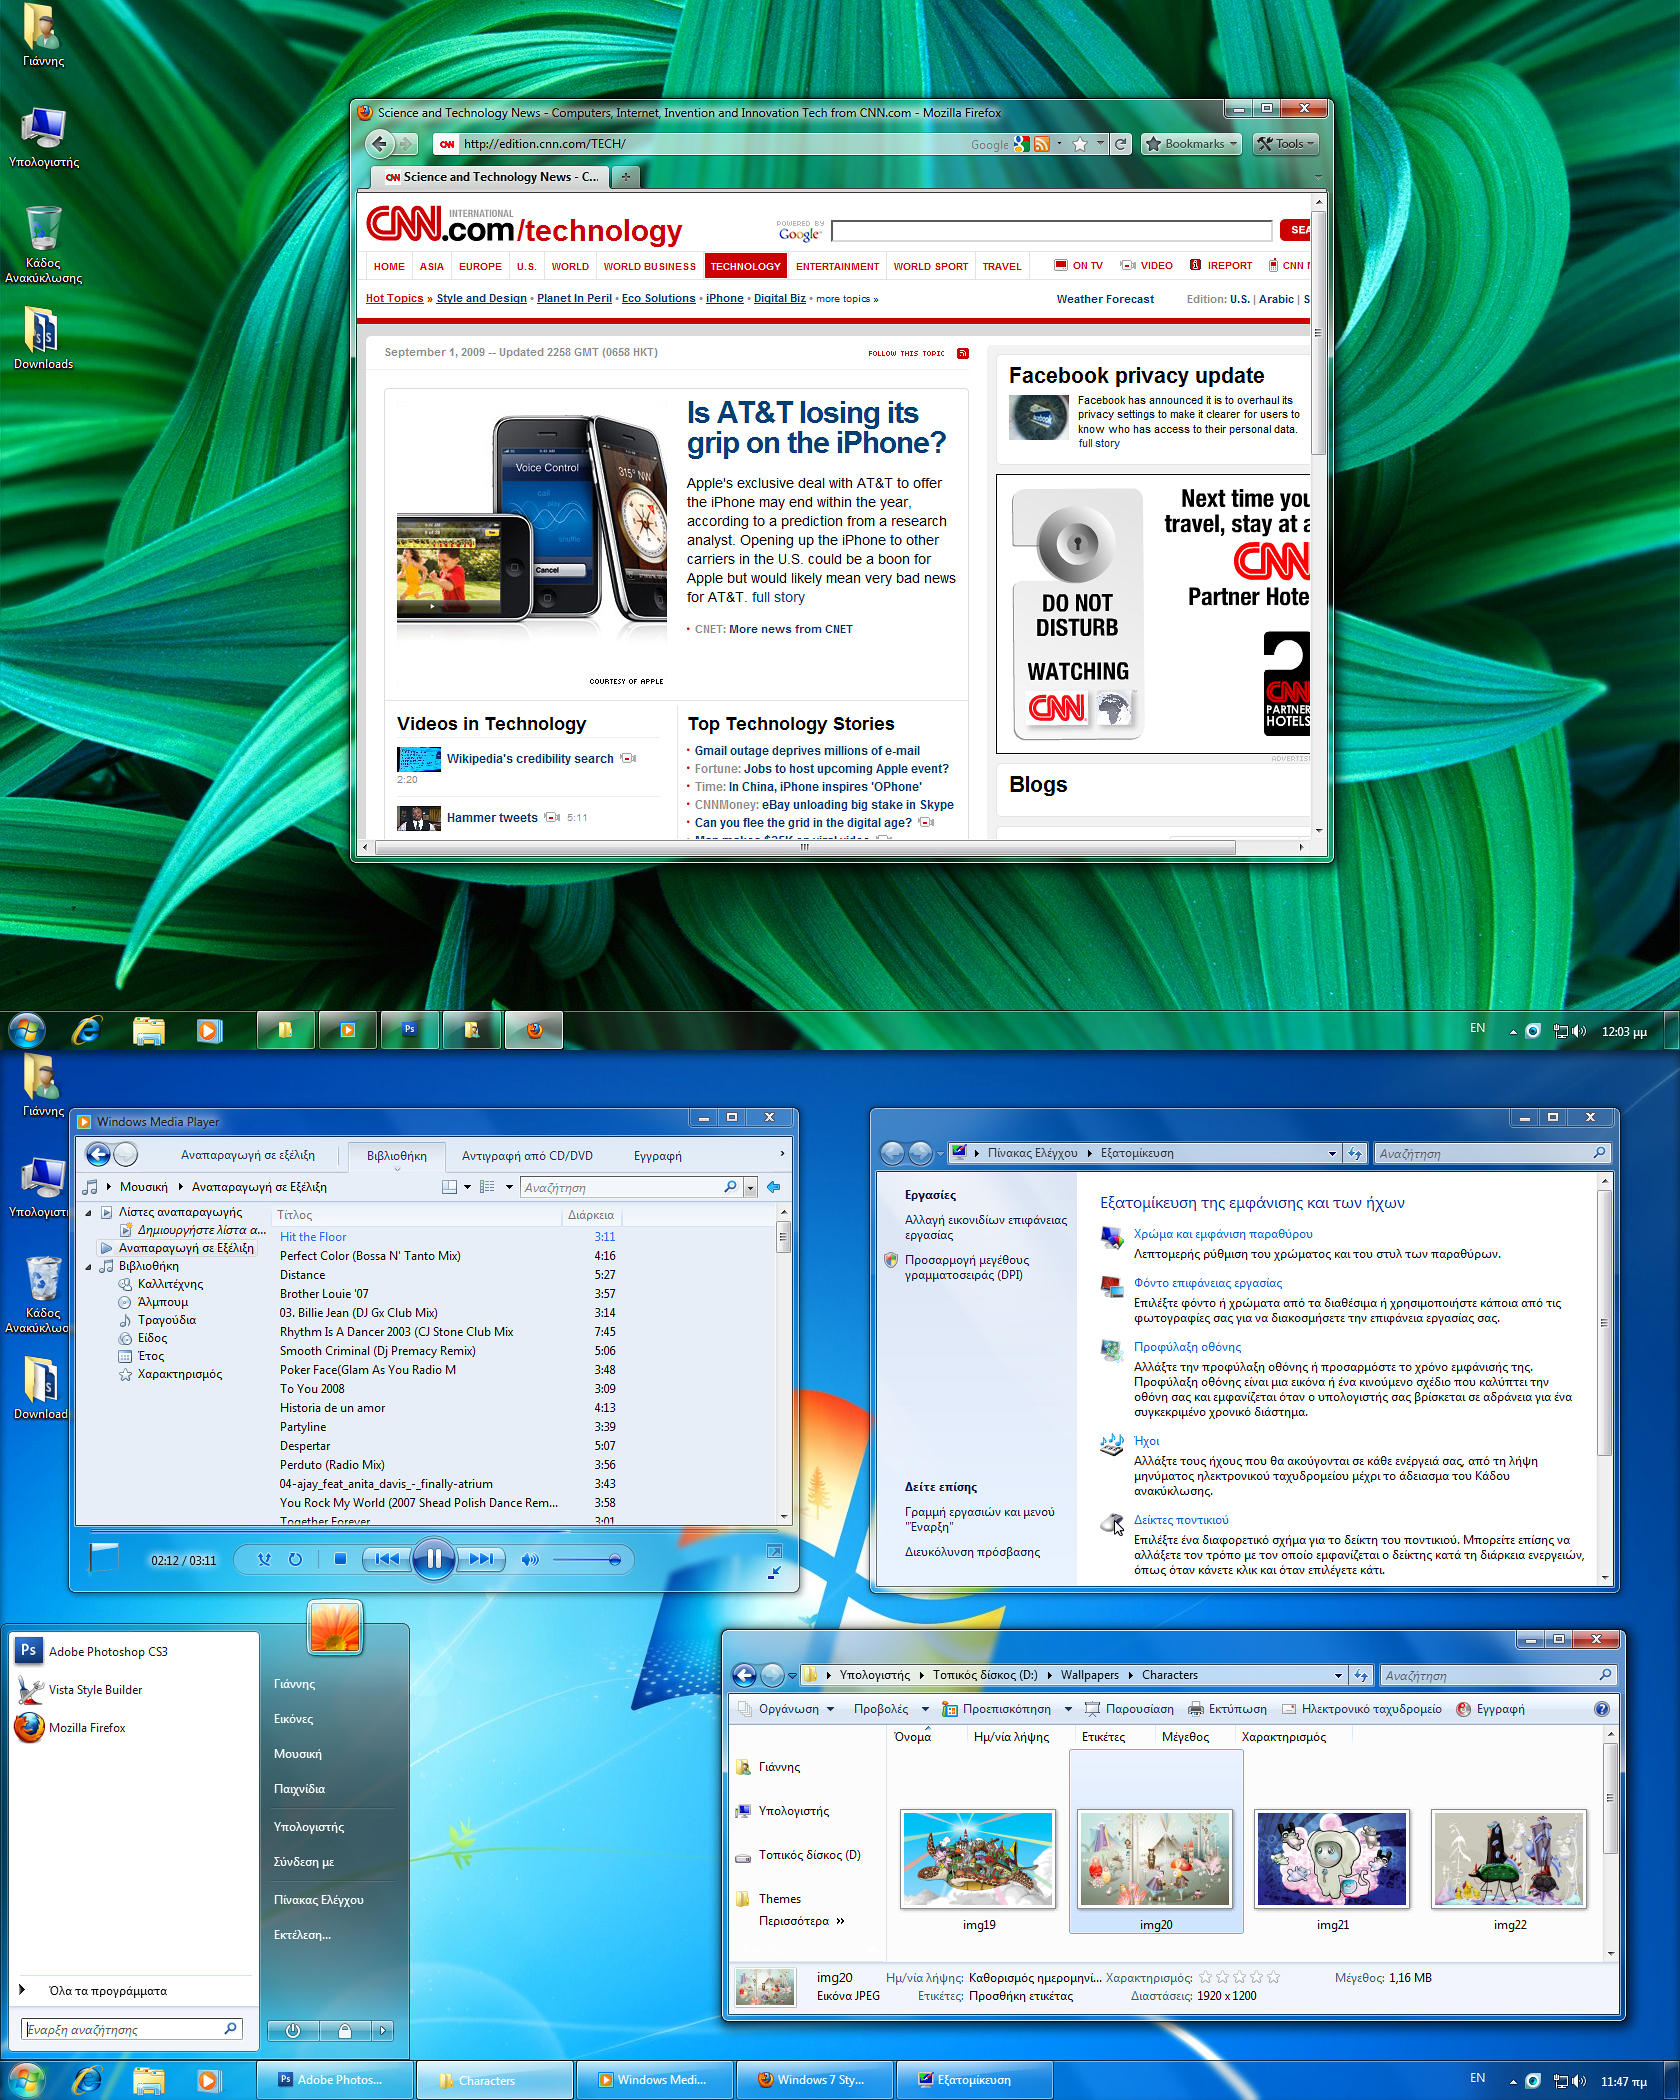 Windows 7 Style For Vista By Giannisgx89 On DeviantArt